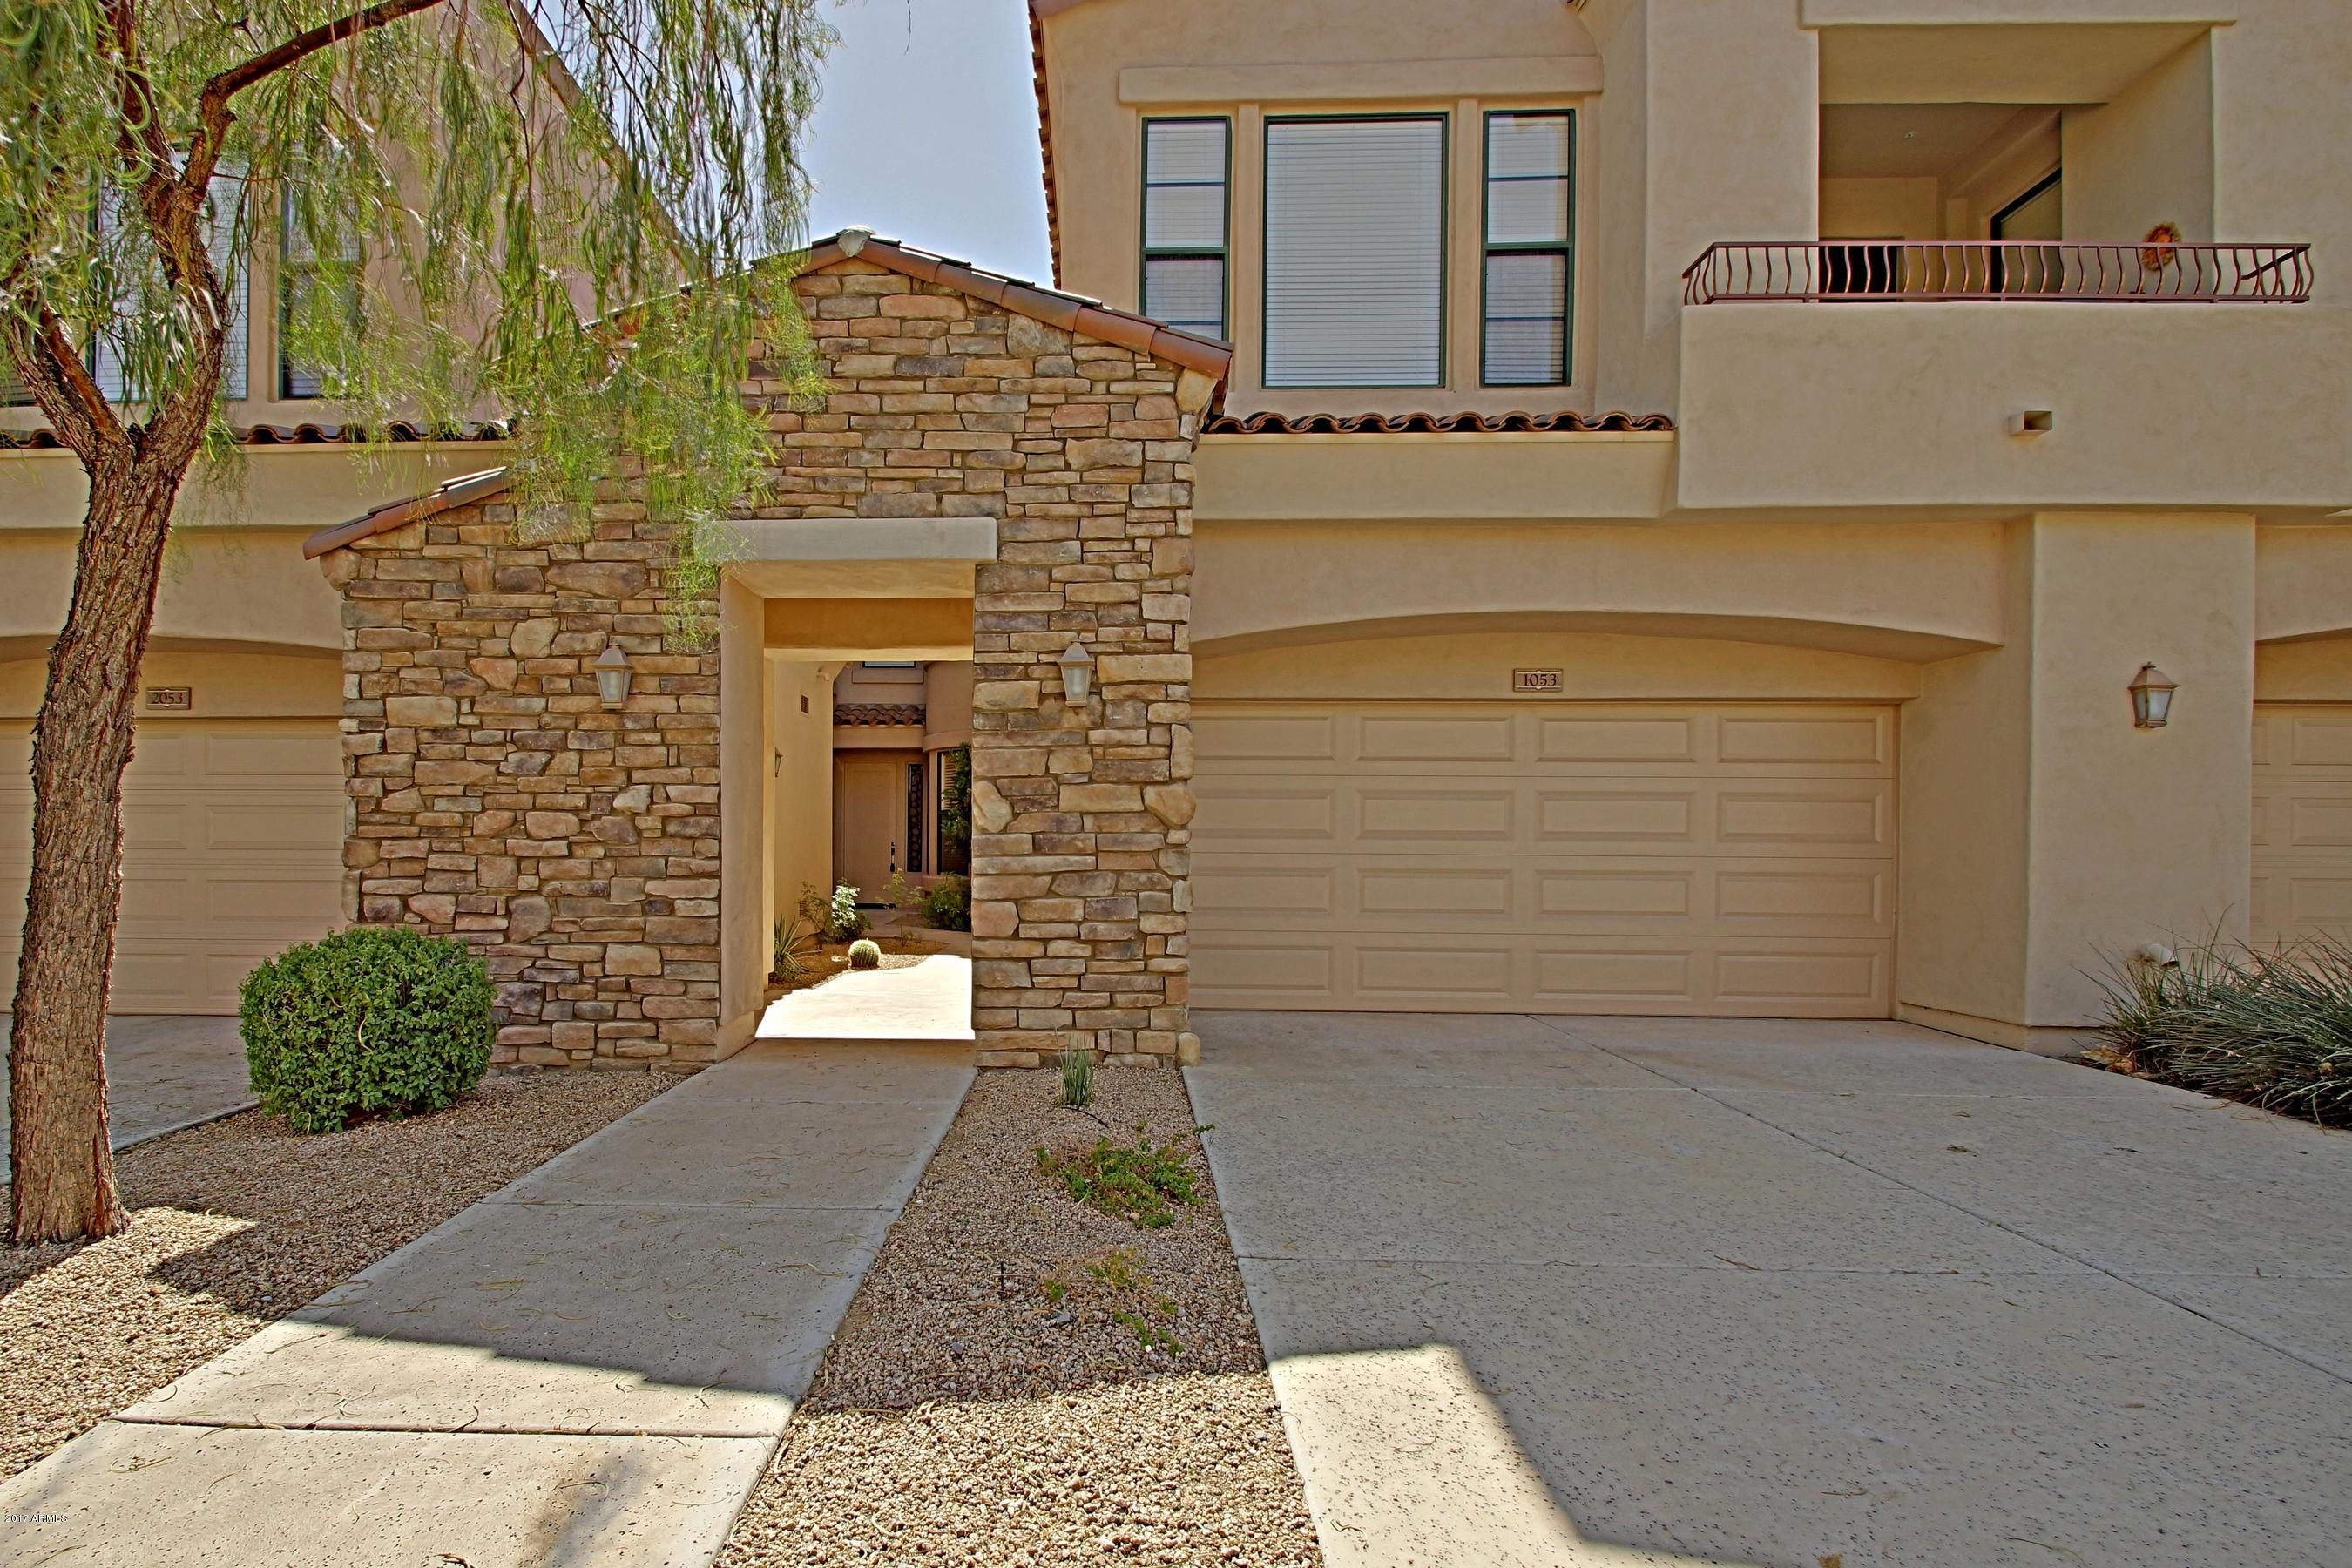 19550 N Grayhawk Drive, Unit 1053, Scottsdale AZ 85255 - Photo 1